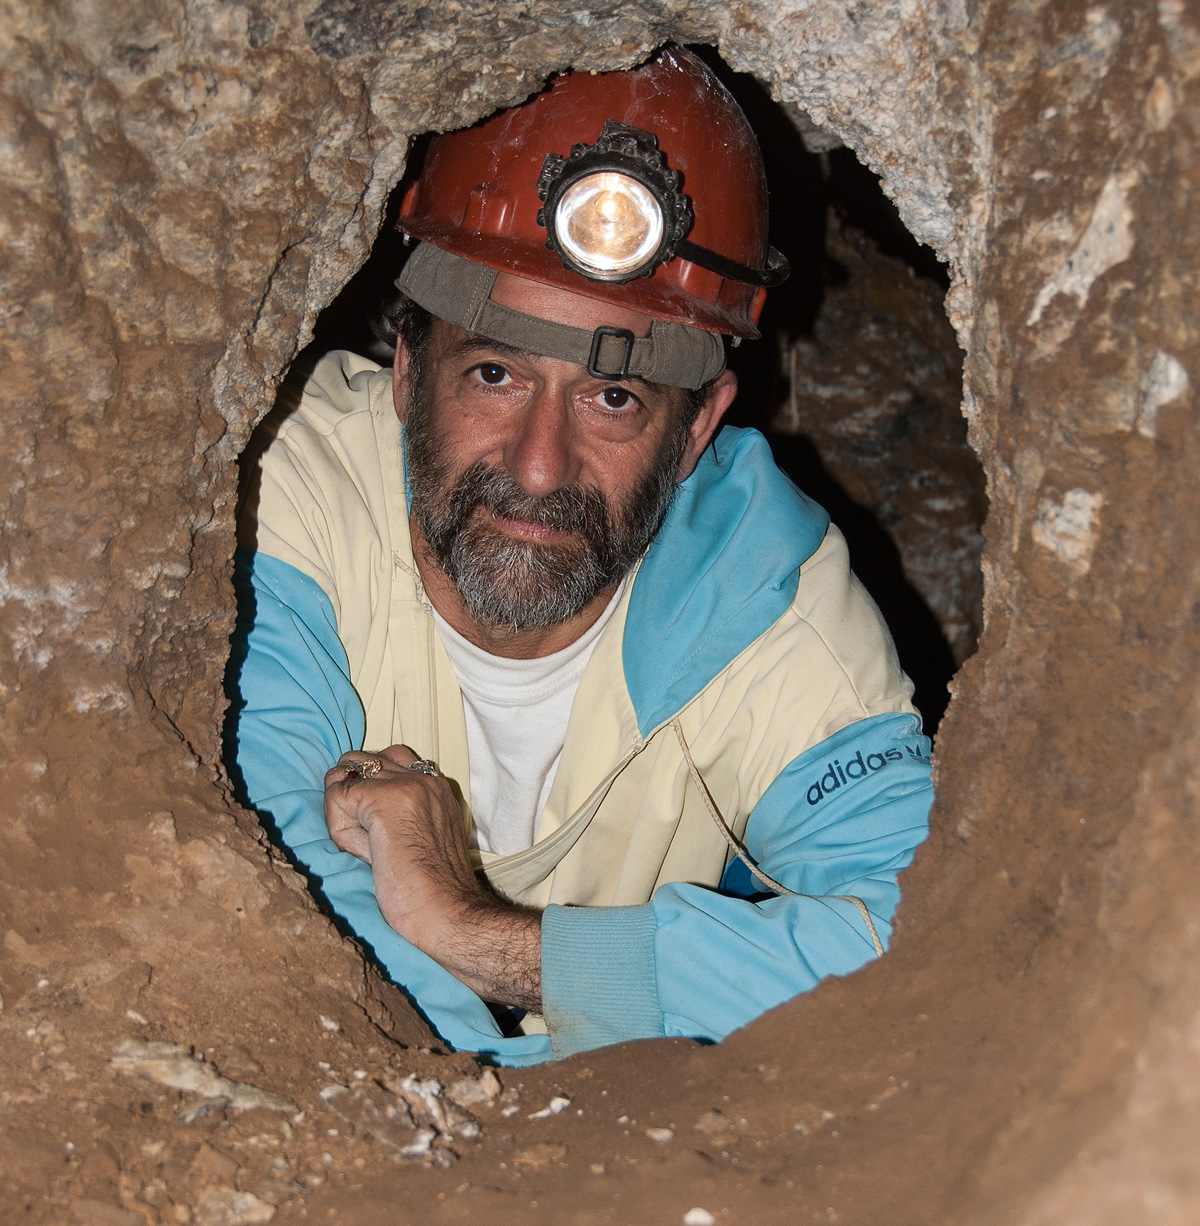 Dana Schorr in the ancient galleries at Tajikistan's Kuh-i-Lal spinel mines. Click on the image for a larger view. Author's photo, 2006